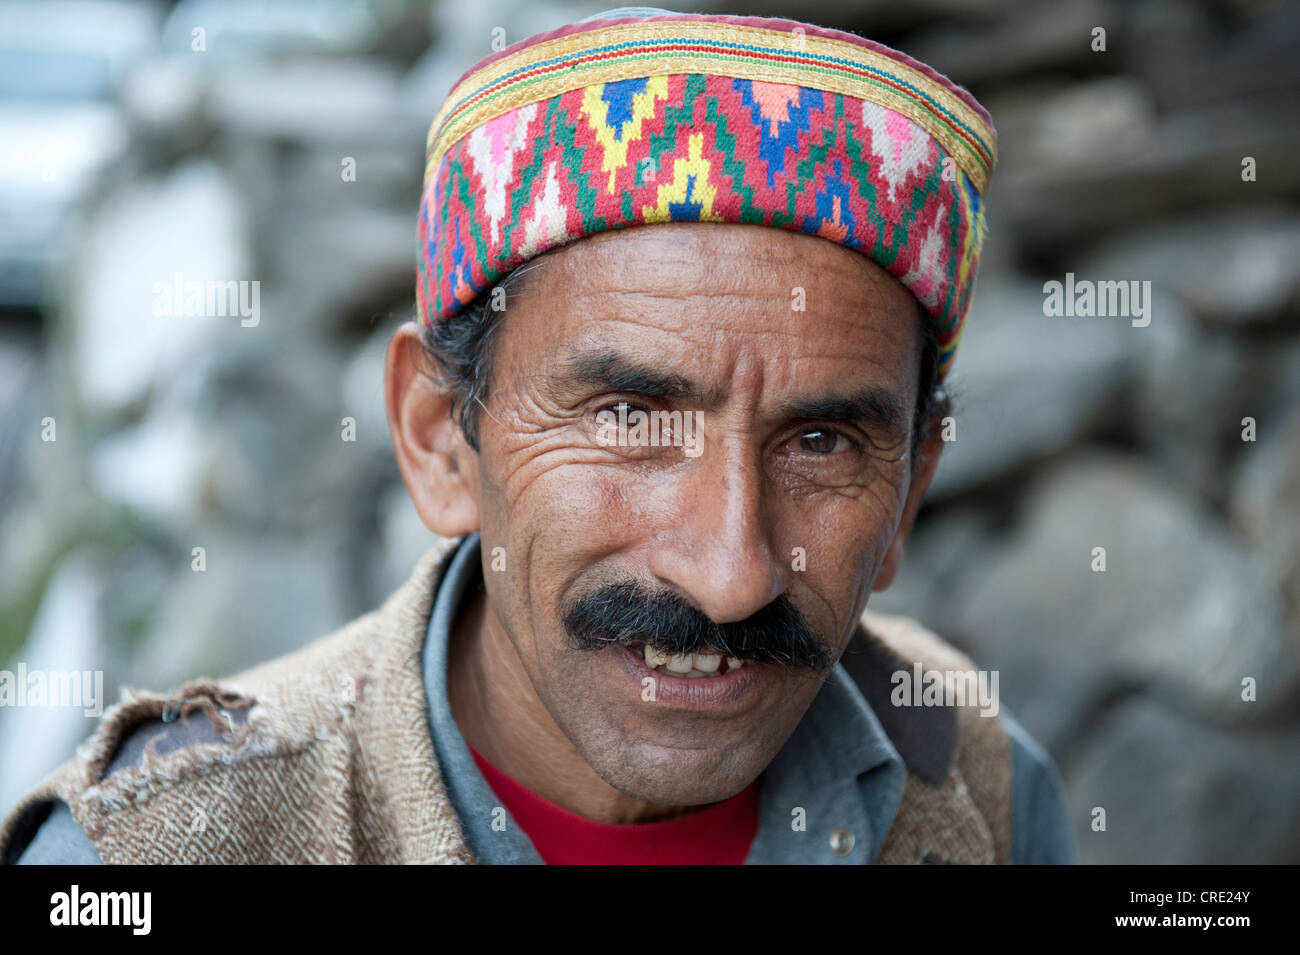 Portrait, Man wearing a typical brightly coloured decorated cap, Manali, Kullu district, the Himalayas, Himachal Stock Photo